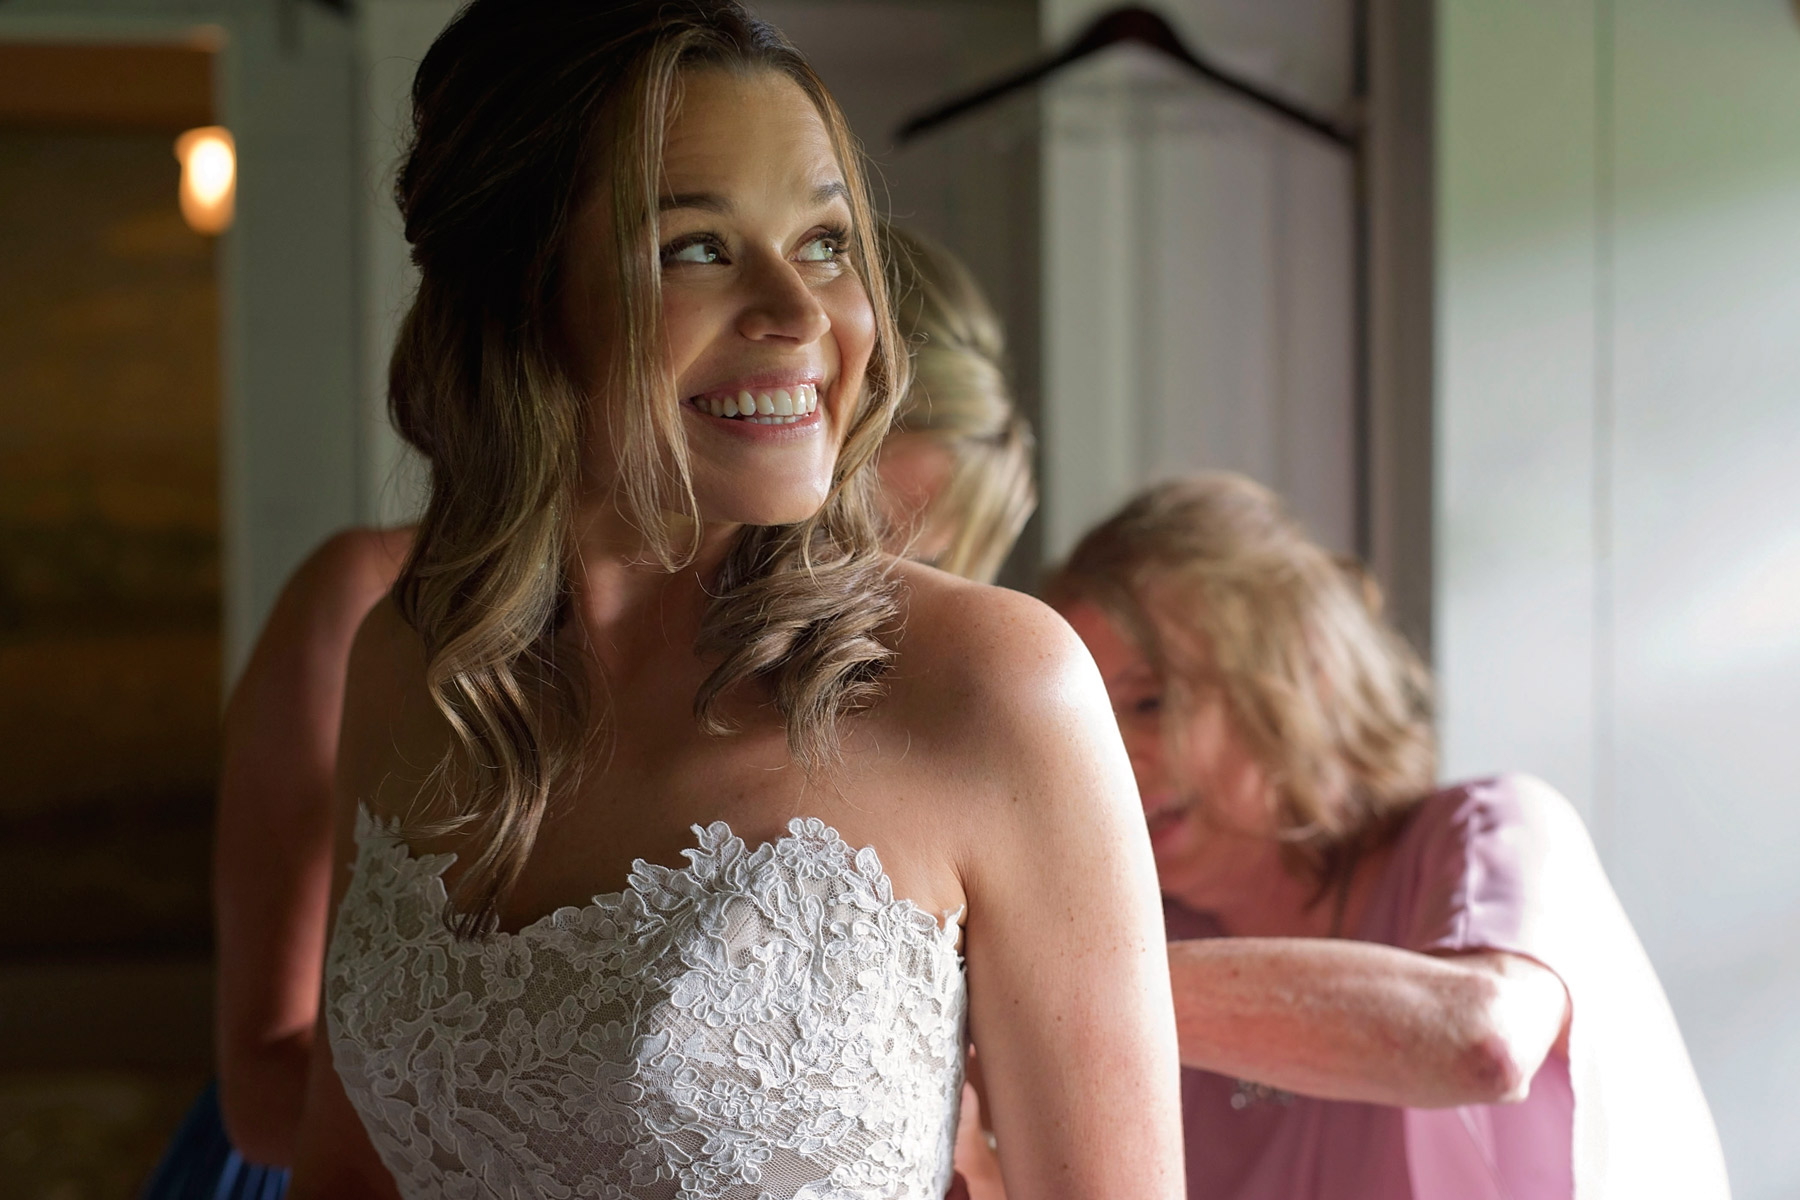 Bride looking excited while getting into her wedding gown